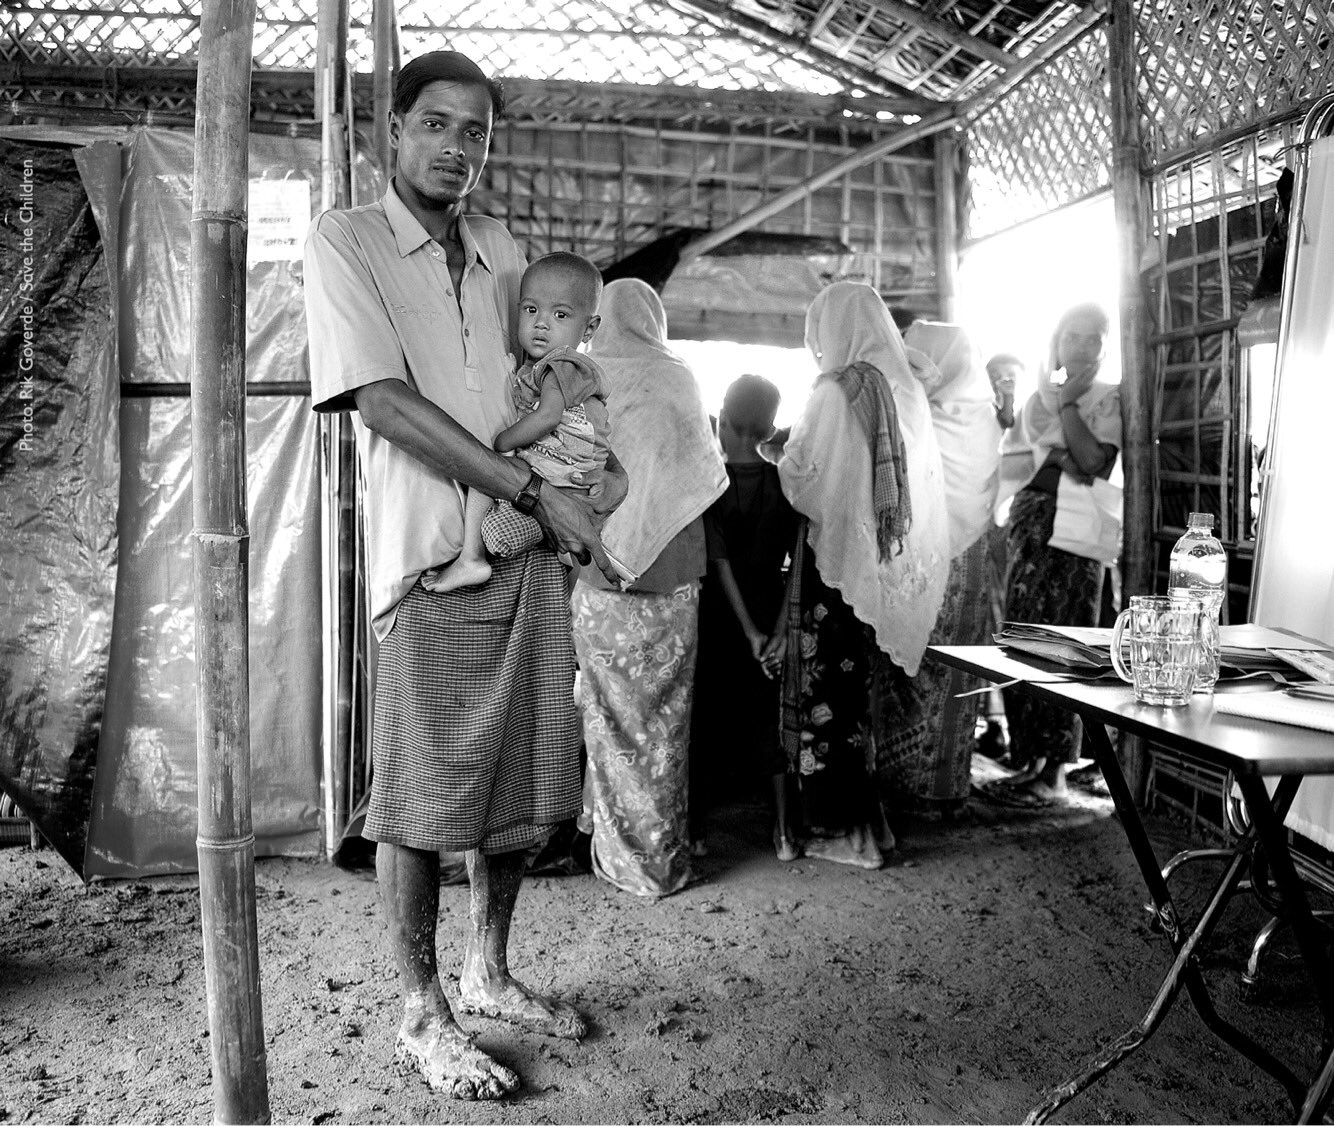 One �� where we all ❤ our children. Please help. #Rohingya #Refugee @SavetheChildren  https://t.co/t2eJN244Jl https://t.co/9ZPwe5olJC